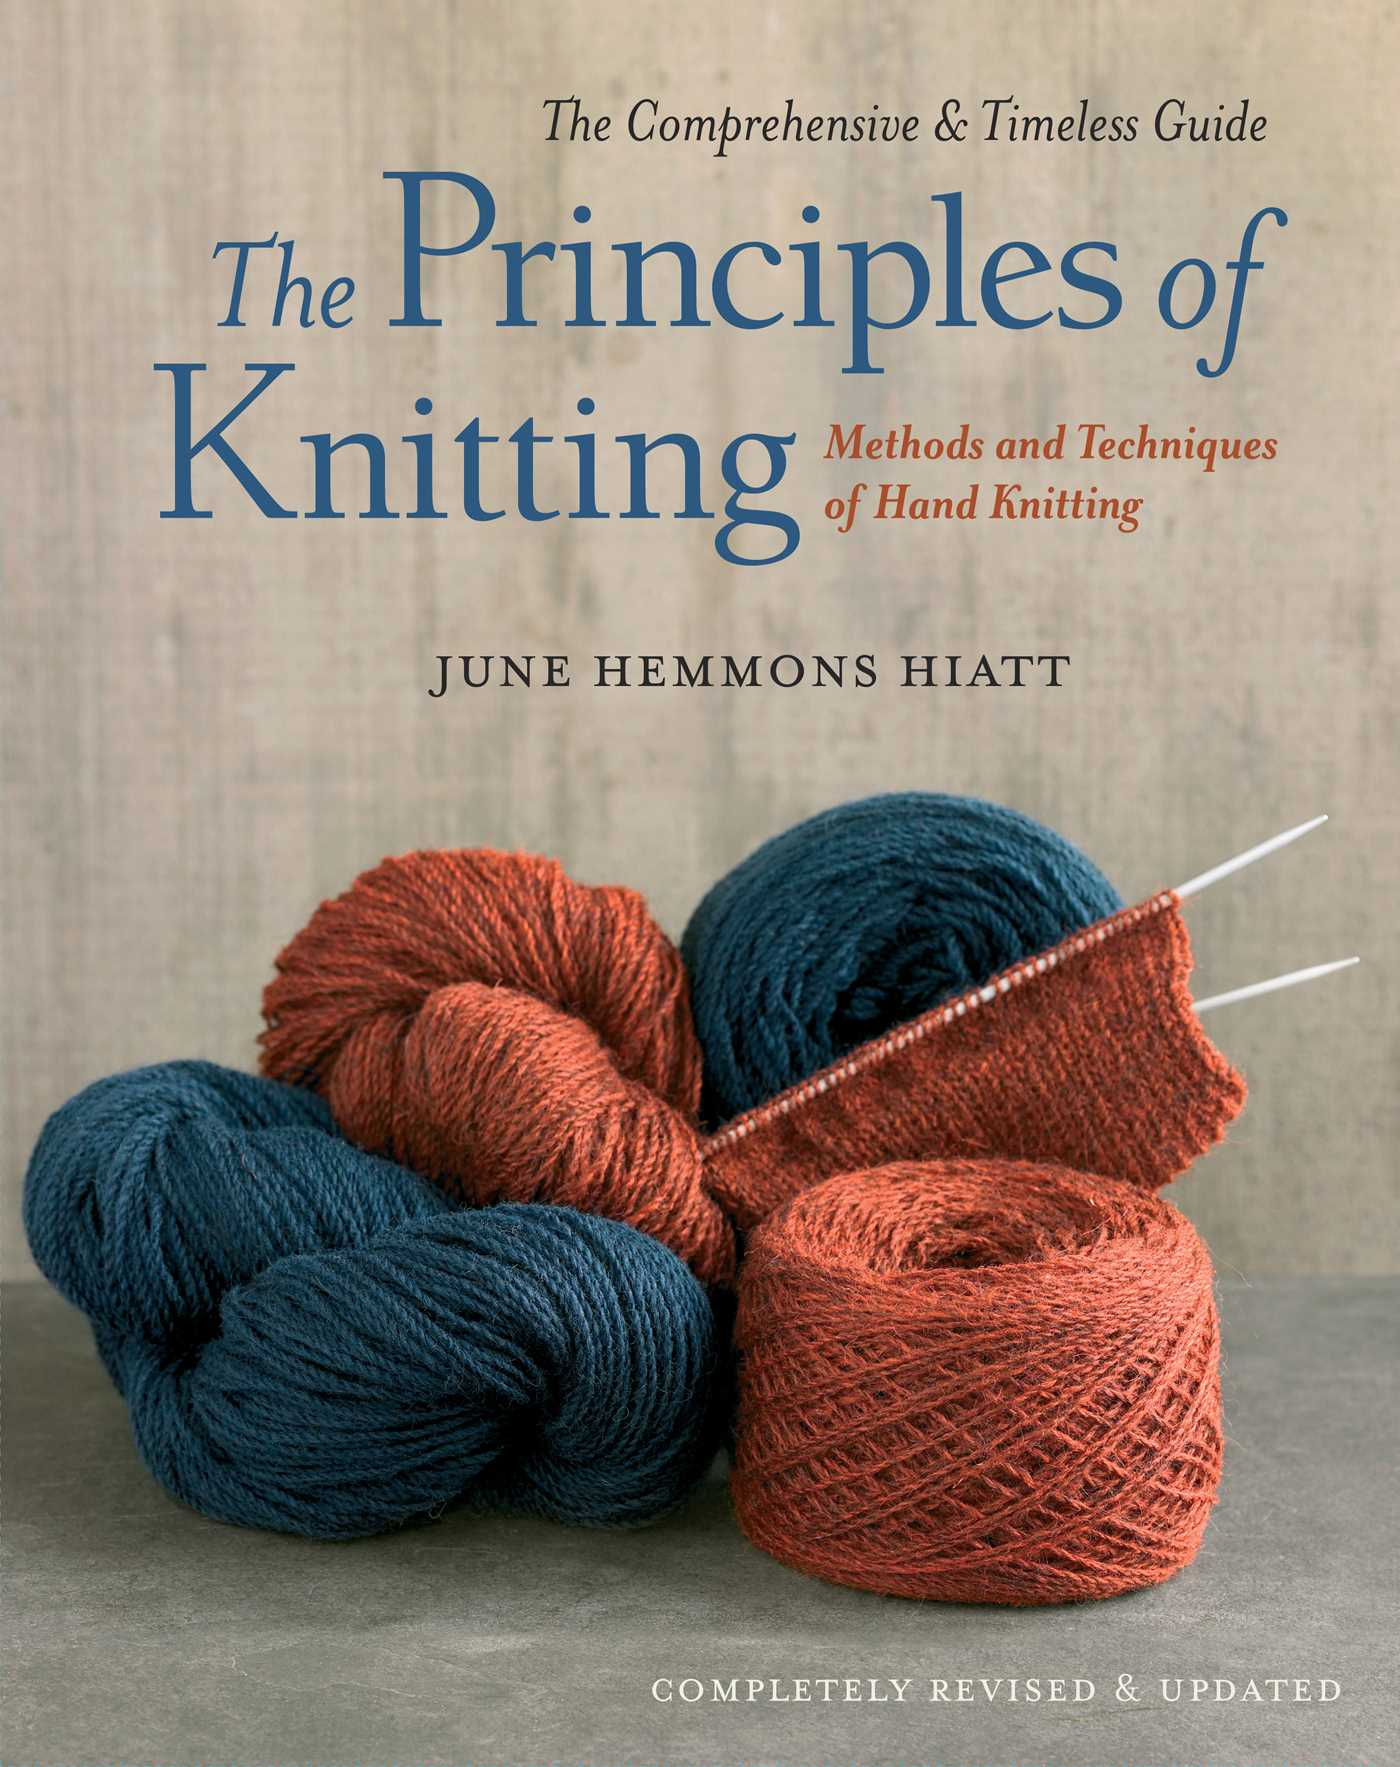 The principles of knitting 9781451688412 hr